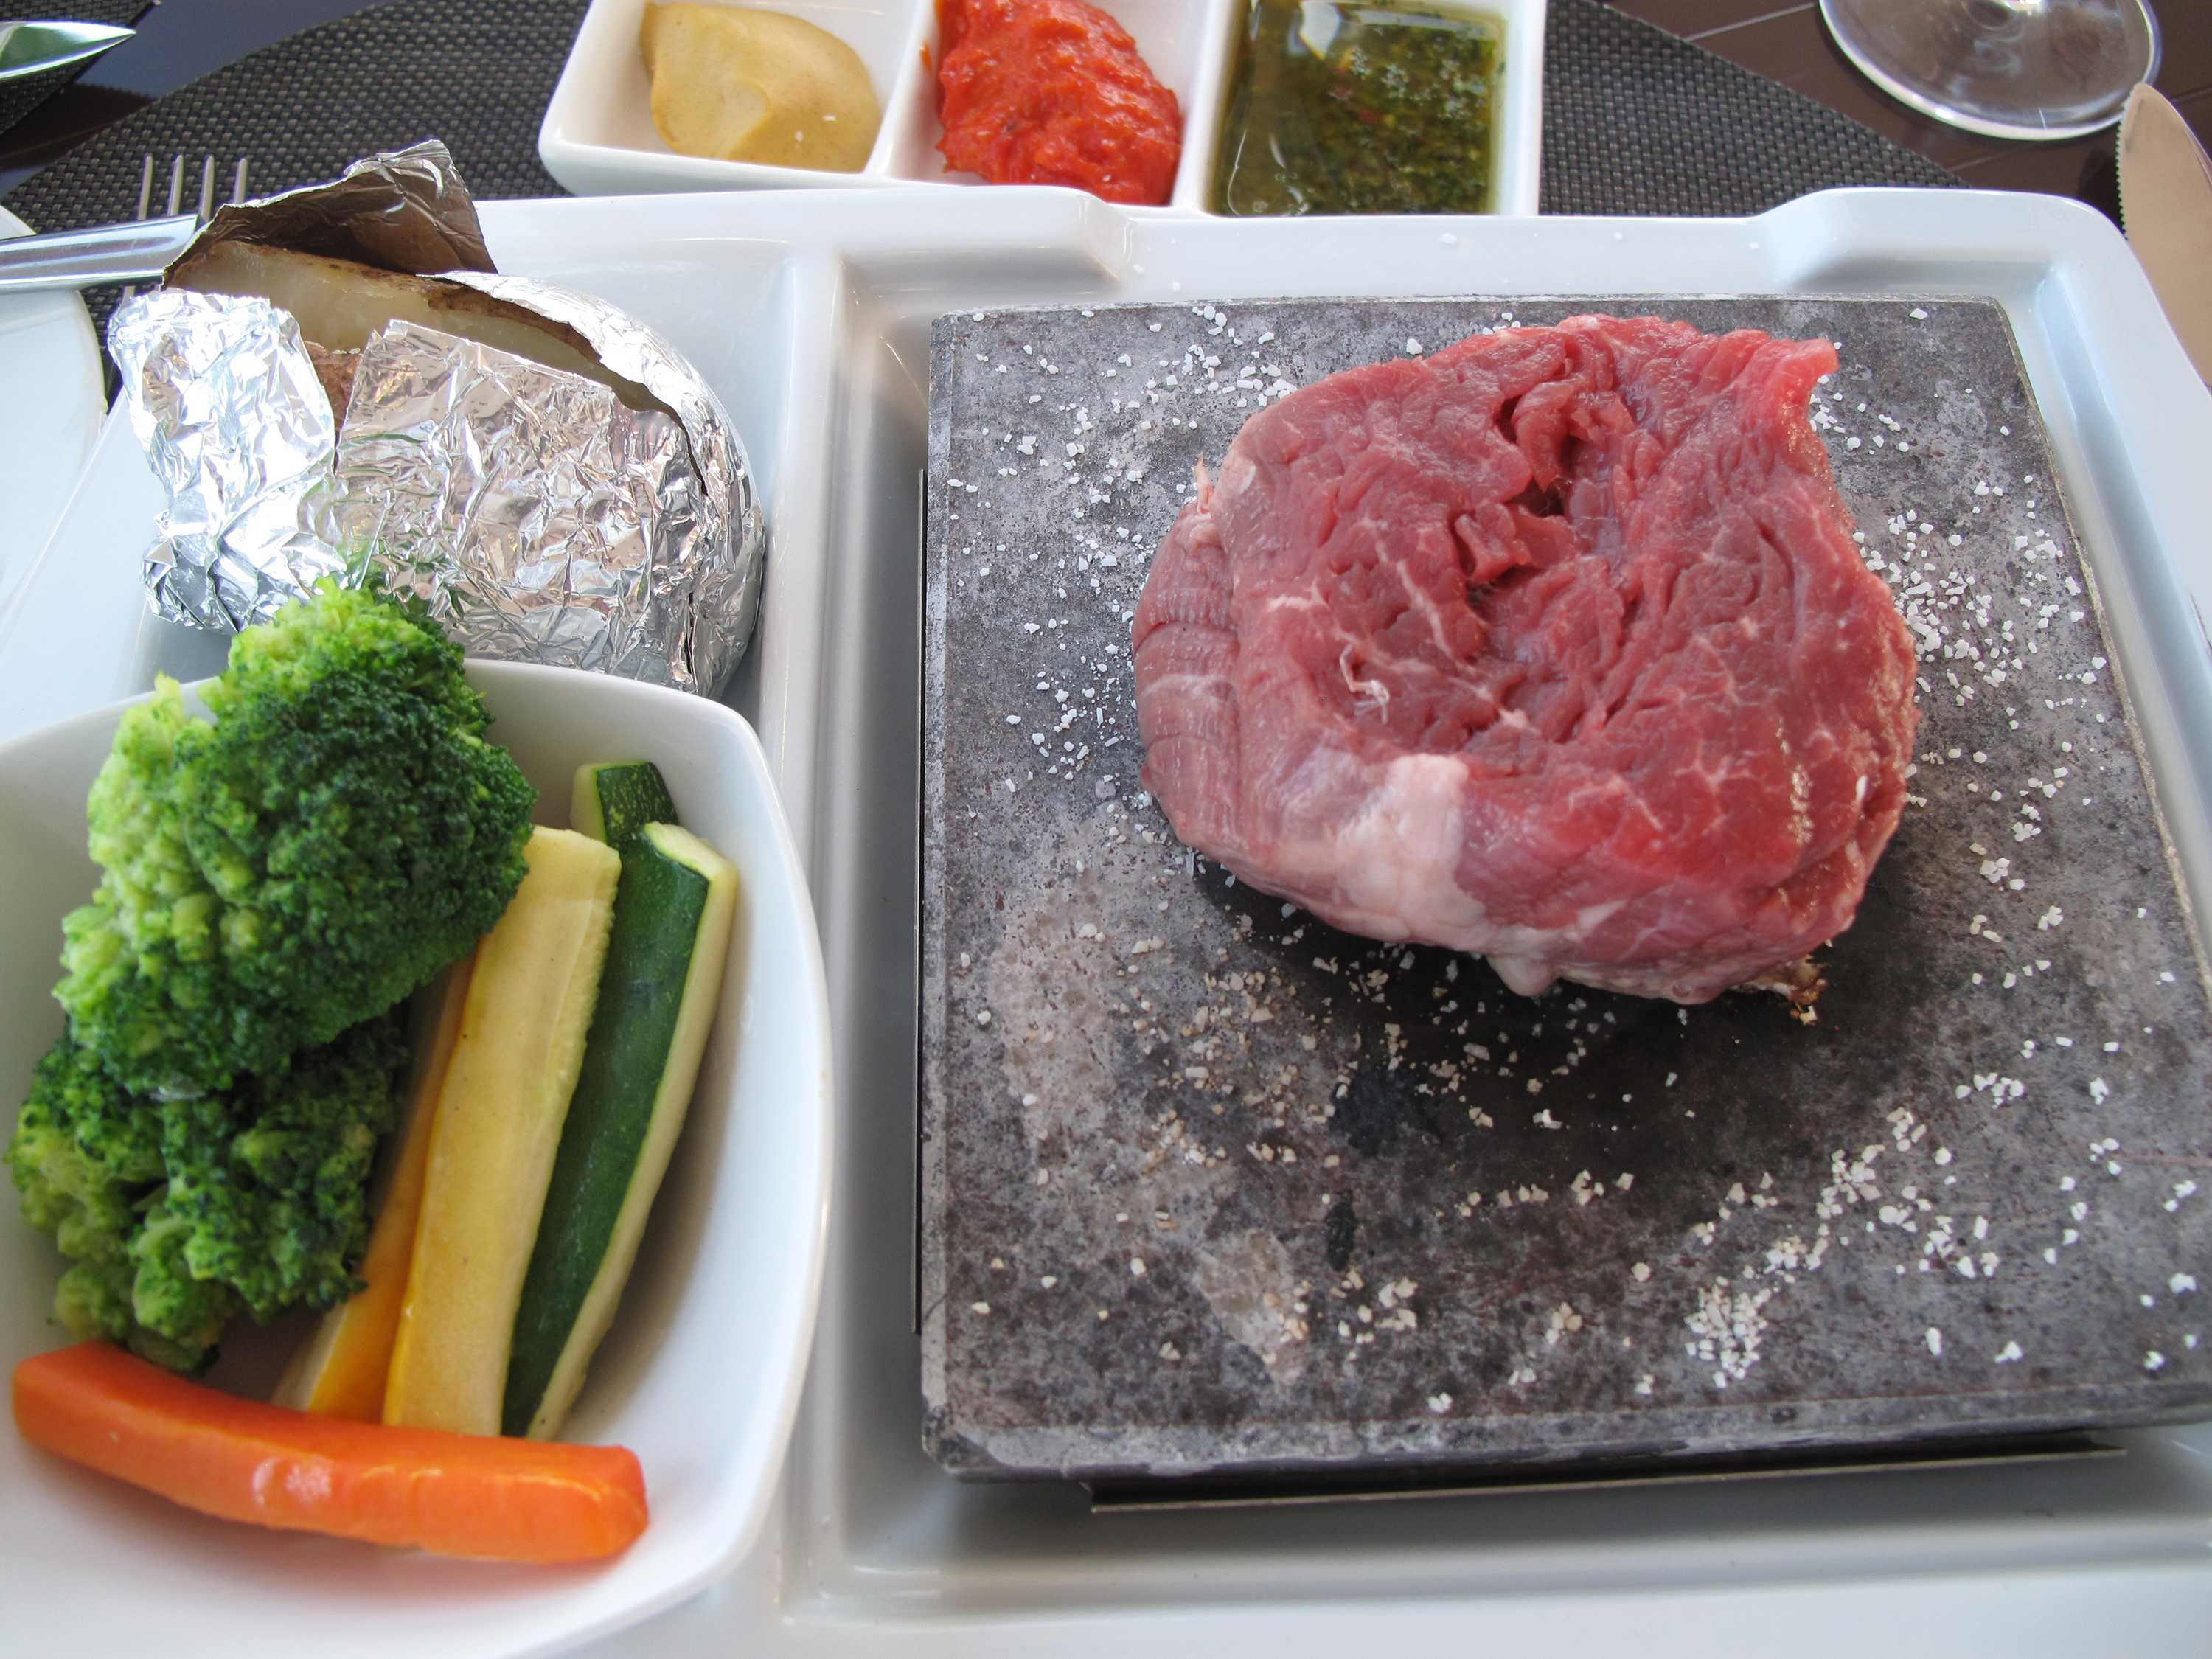 A picutre depicting a piece of raw meat. Surrounded by various vegetables and other foods.